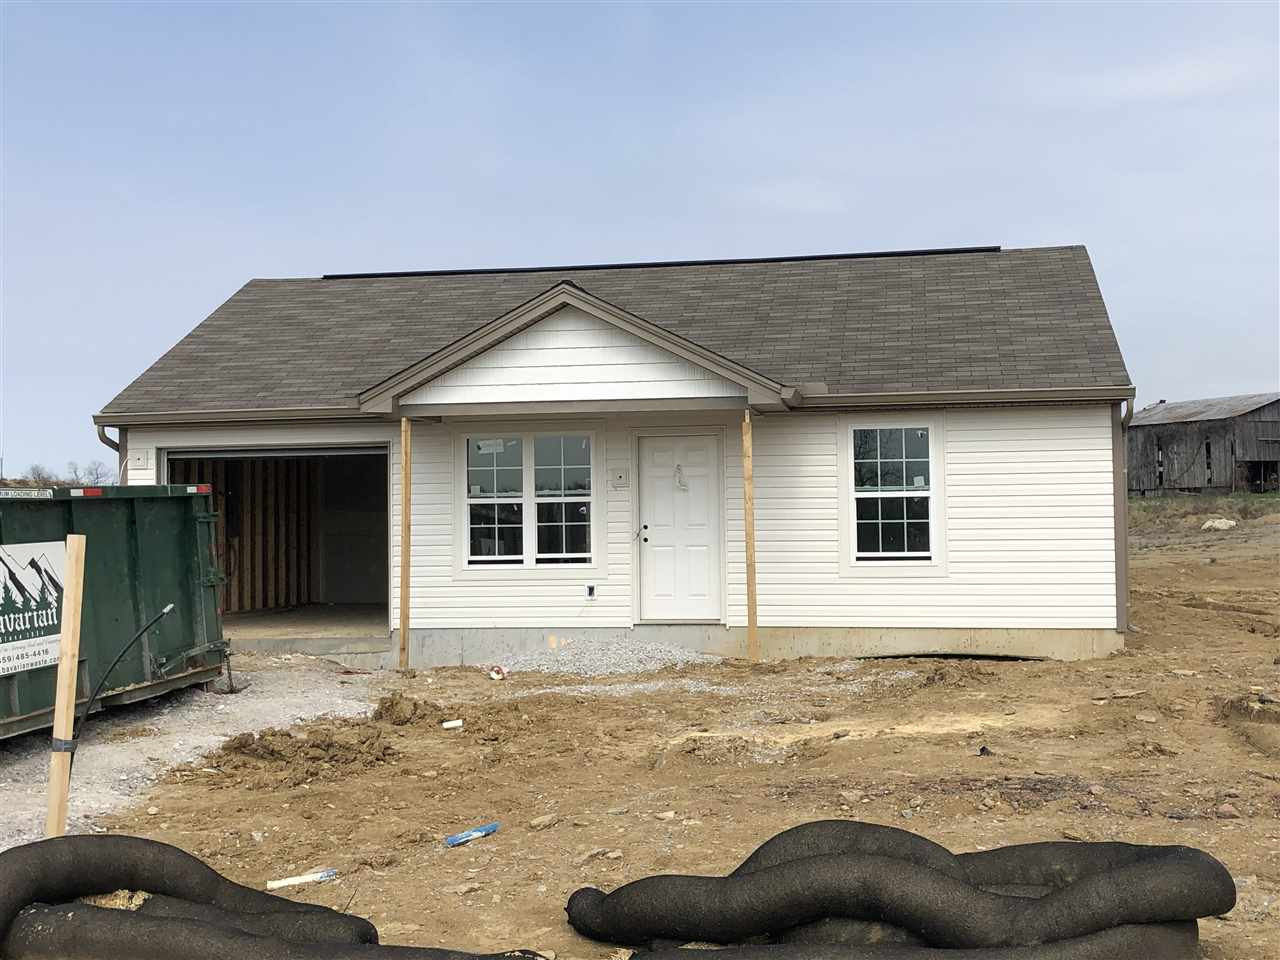 Photo 1 for 1171 Gemstone Pointe Dr, LOT 1 Walton, KY 41094